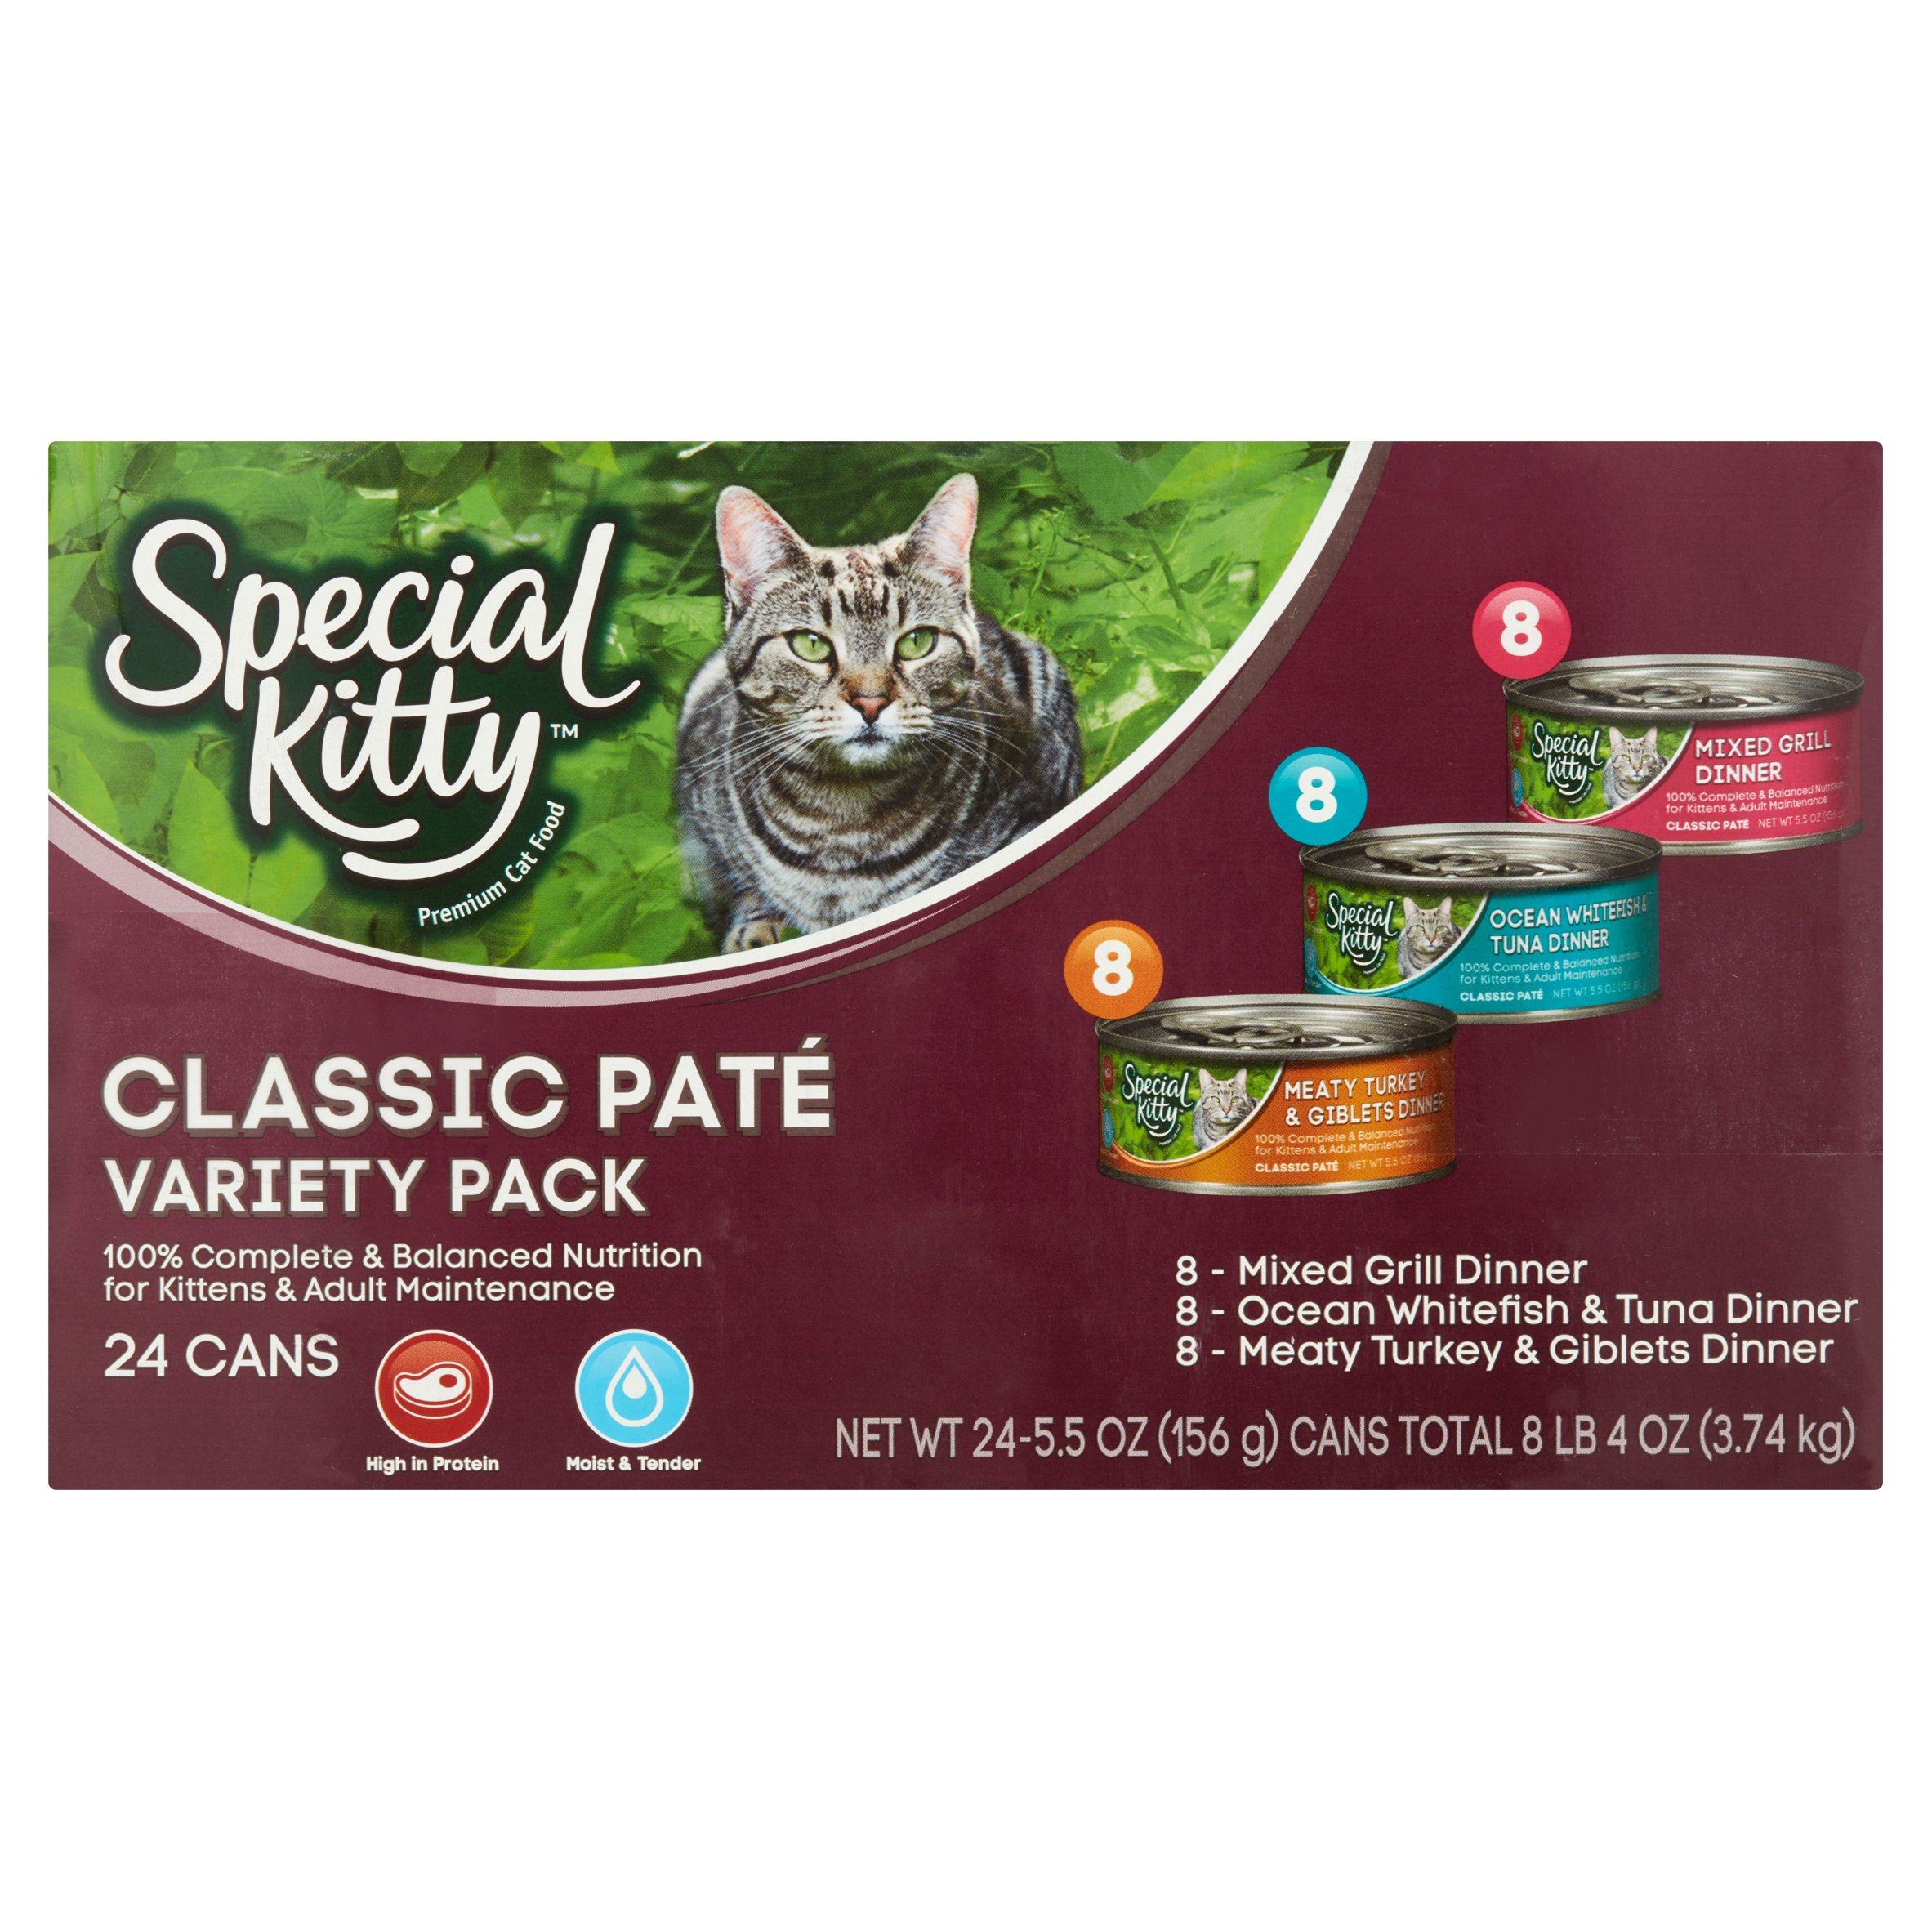 Special Kitty Classic Pate Variety Pack Wet Cat Food, 5.5 Oz, 24 Ct